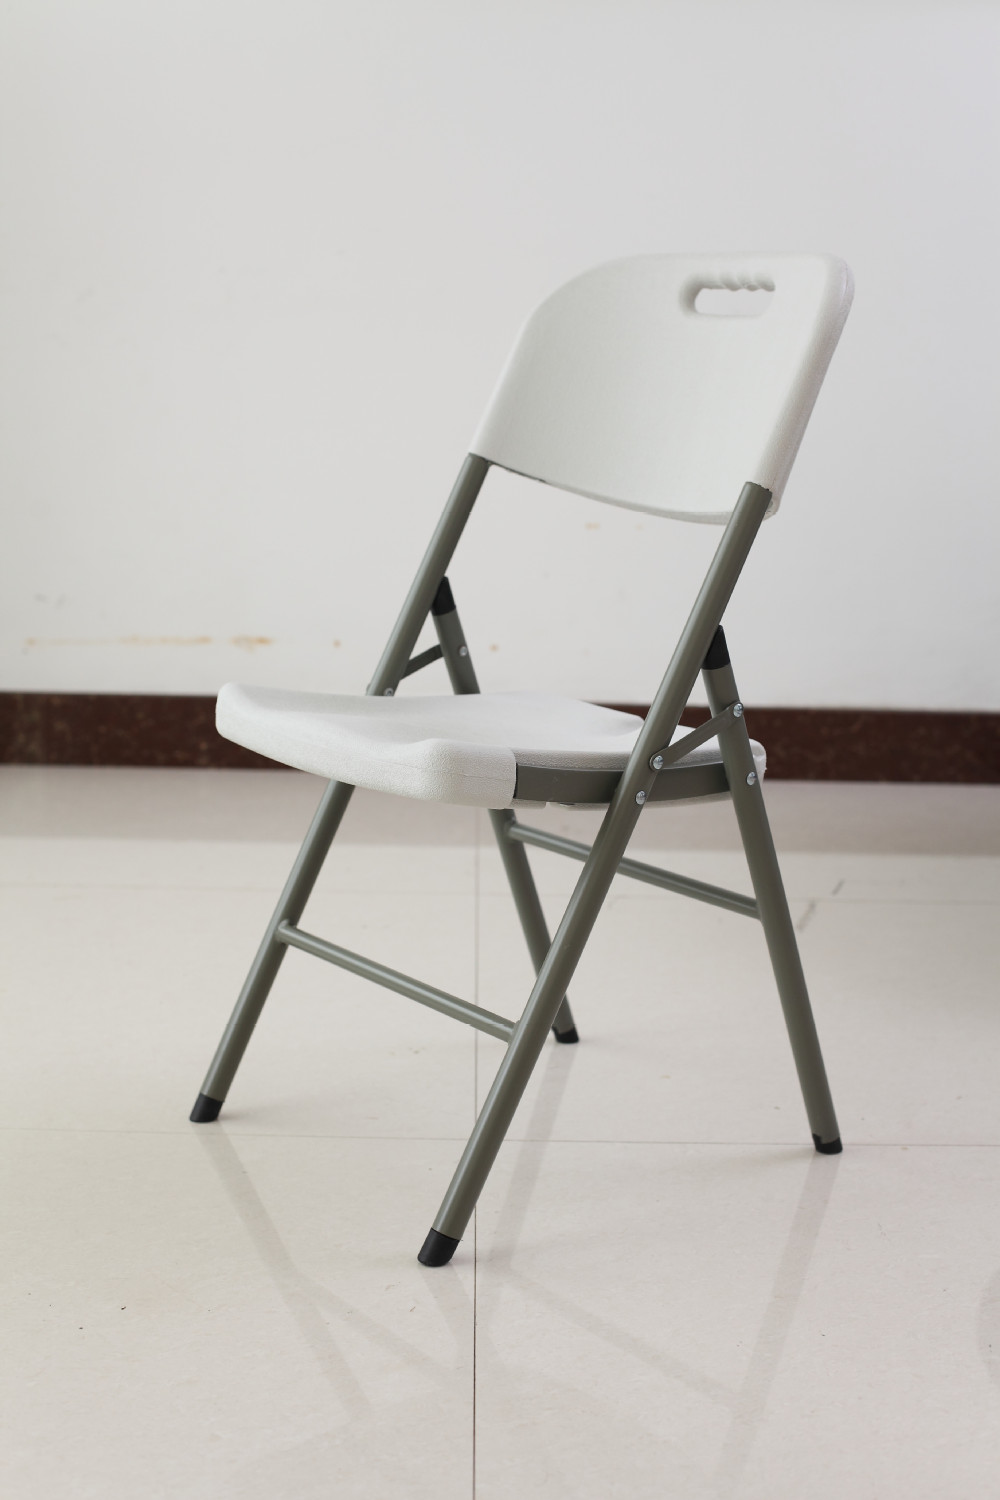 plastic folding chairs in Folding Chairs from Furniture on Aliexpress